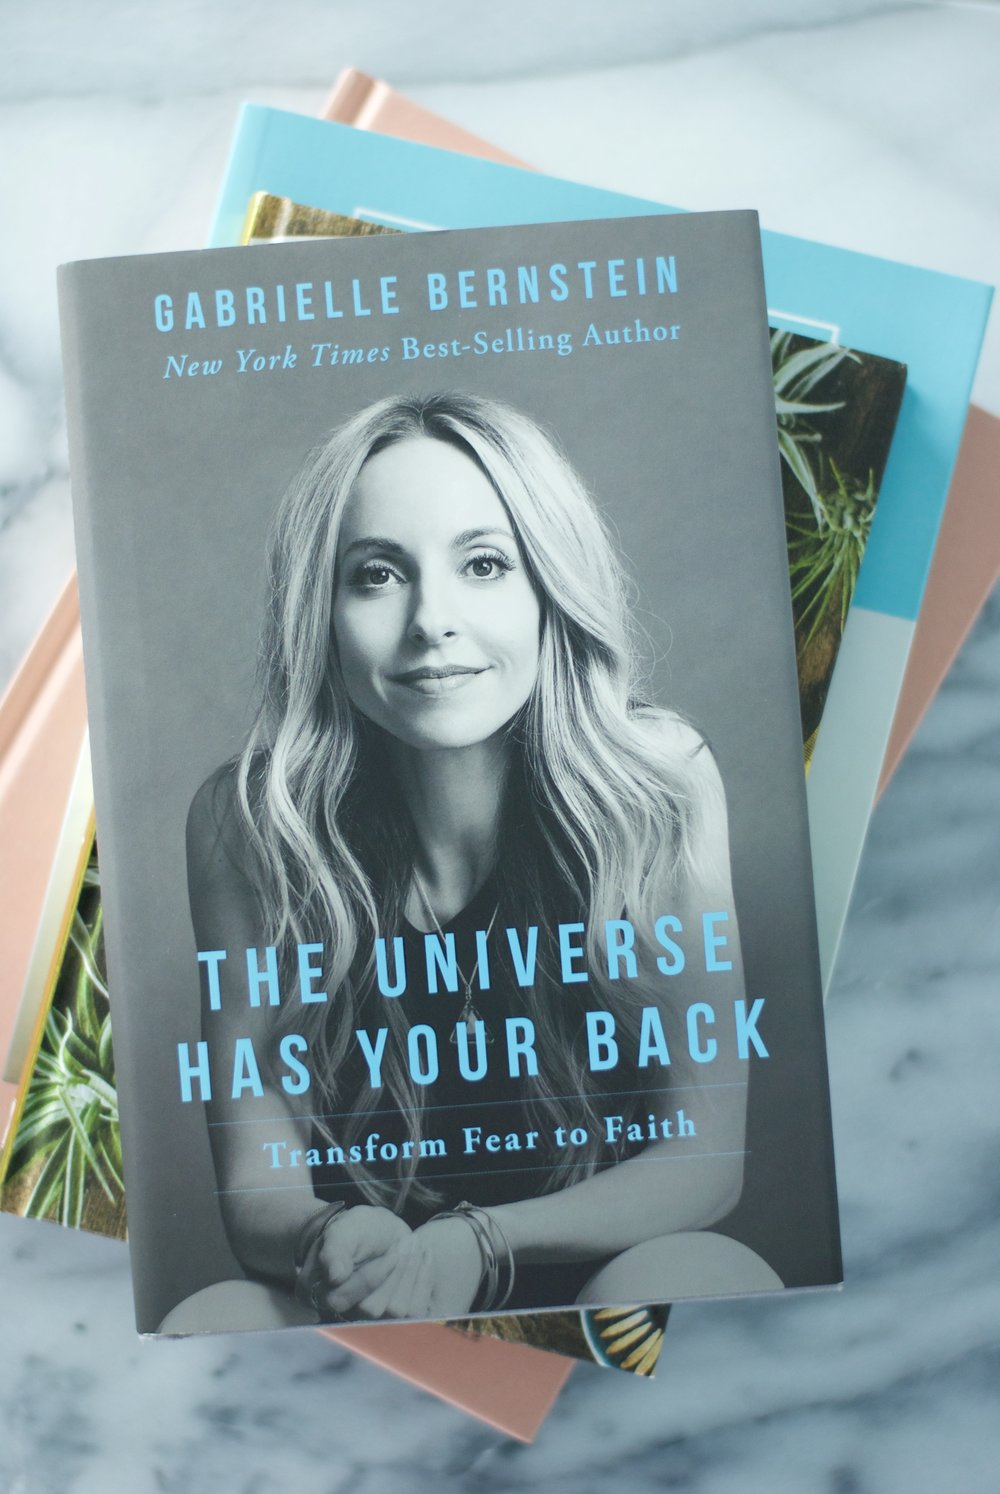 The Universe Has Your Back by Gabrielle Bernstein,  Beauty by Brittany